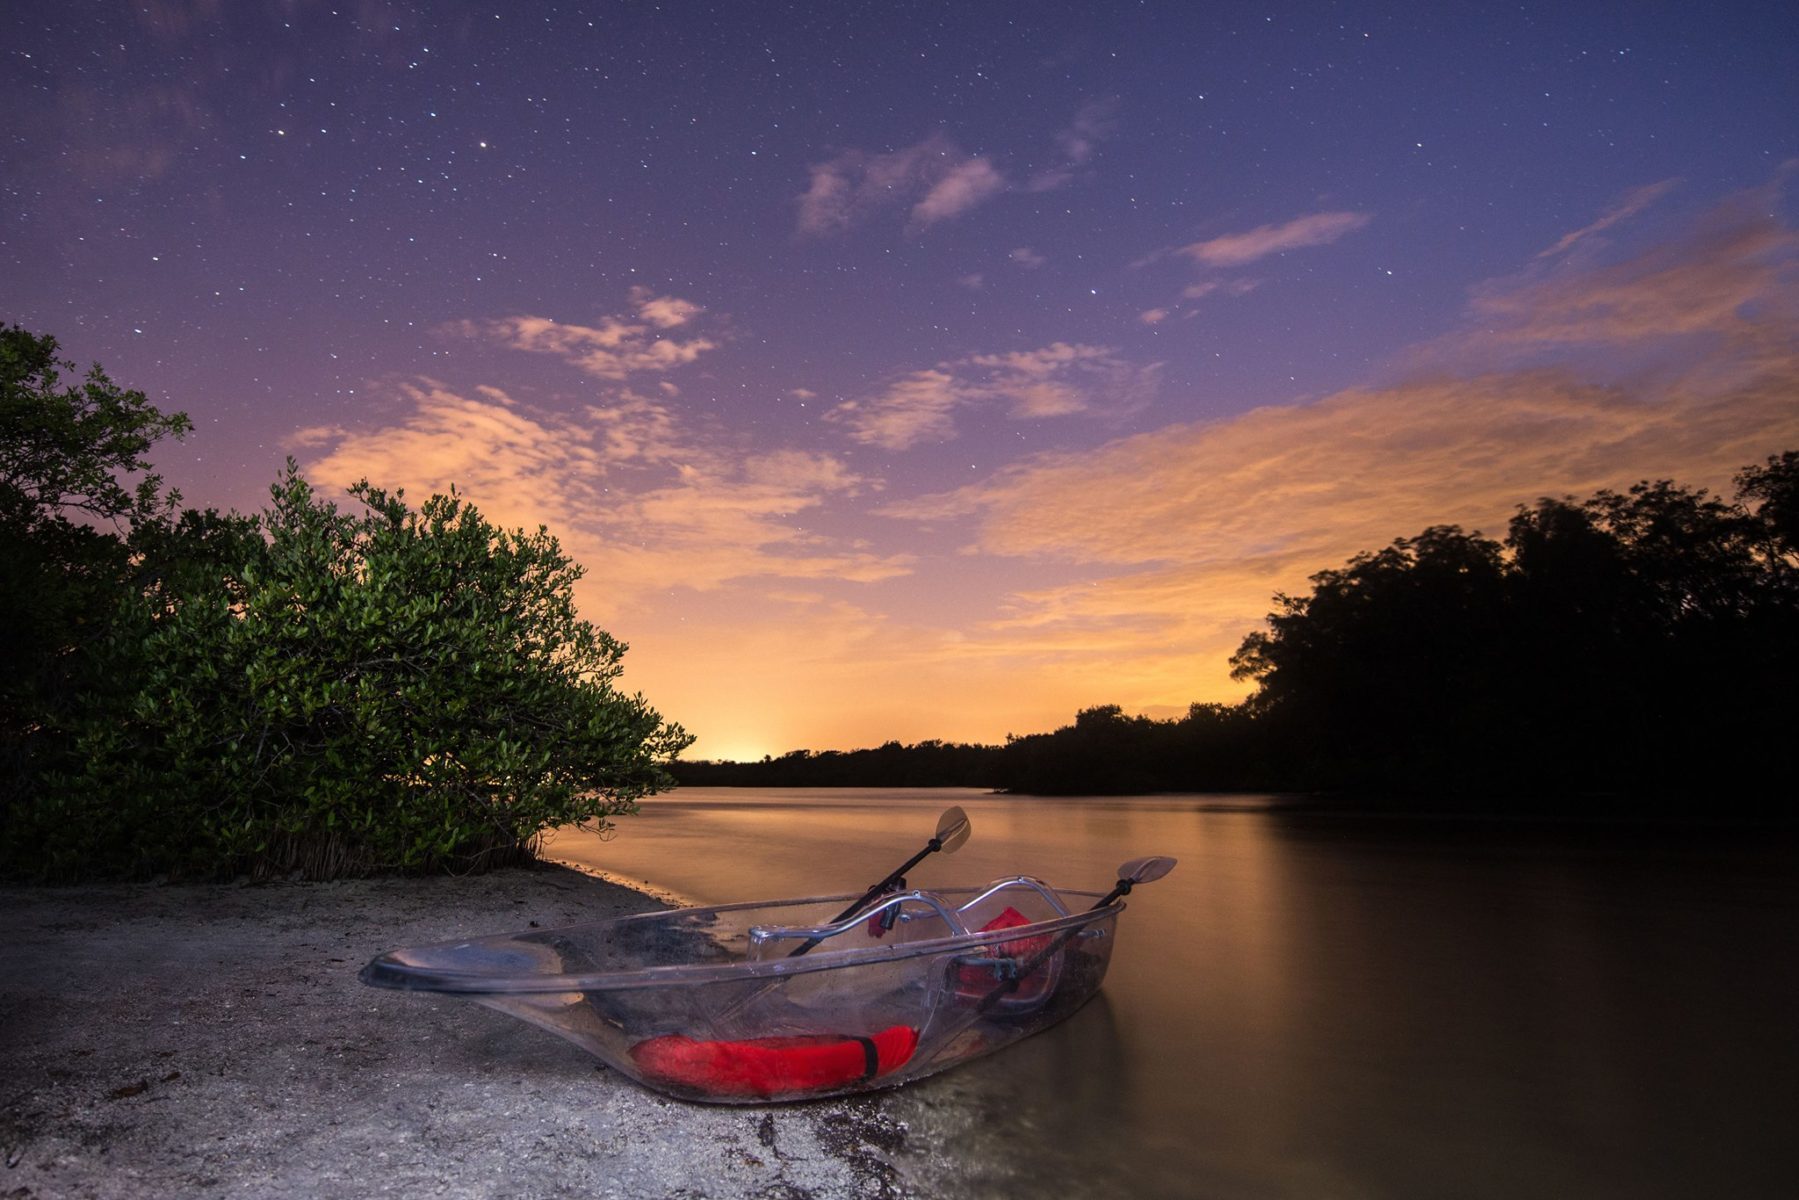 Bioluminescent kayaking at night